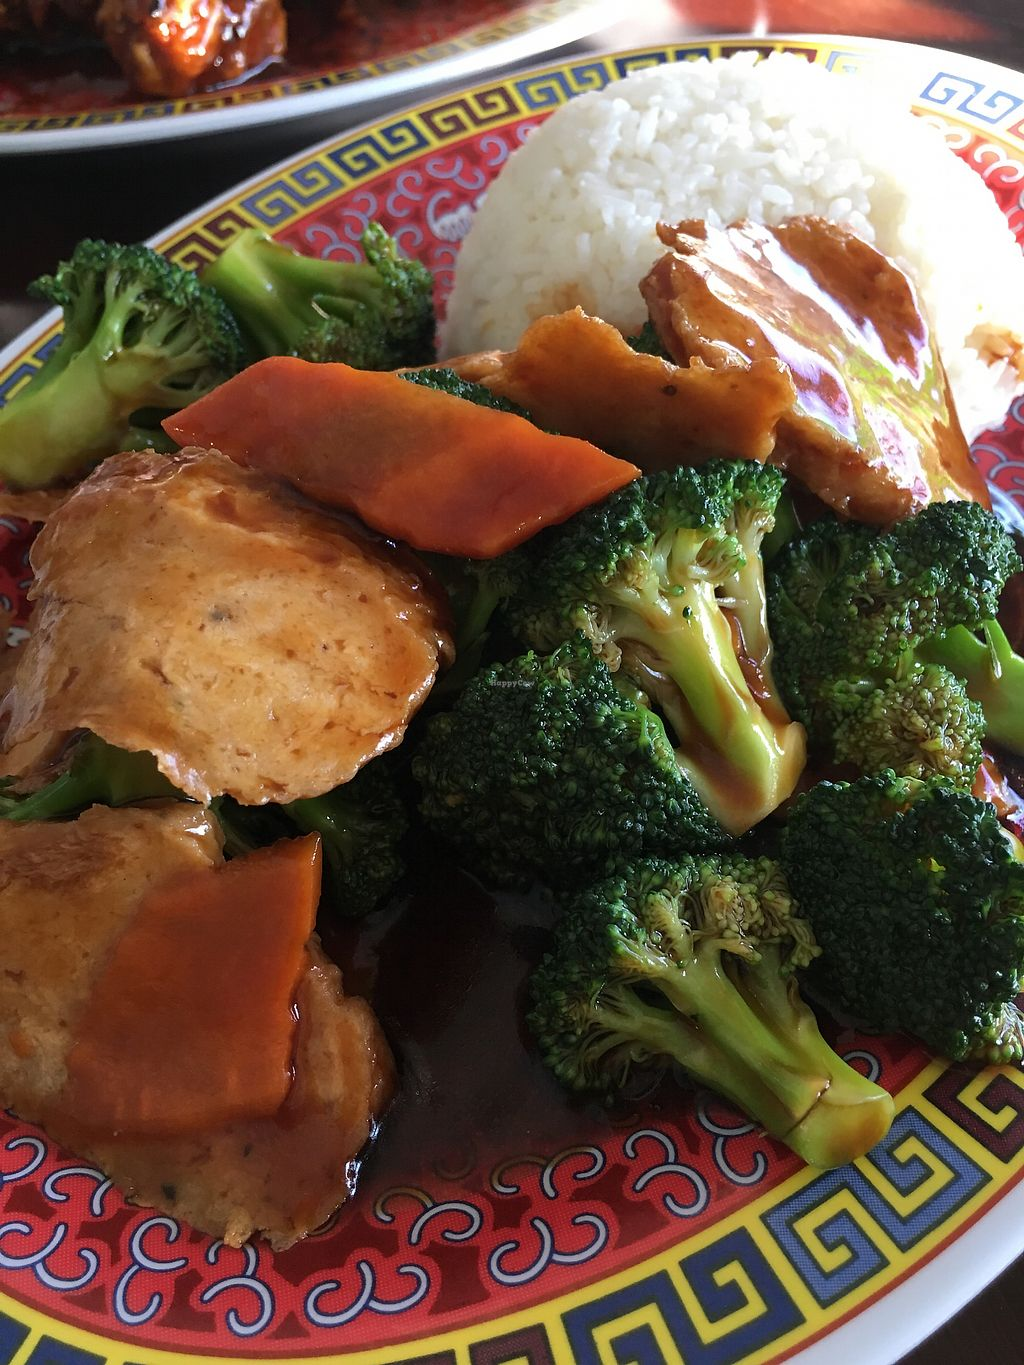 """Photo of Chen Vegetarian House  by <a href=""""/members/profile/whereiamfree"""">whereiamfree</a> <br/>""""Chicken"""" Broccoli ... the best! <br/> November 22, 2017  - <a href='/contact/abuse/image/42869/328002'>Report</a>"""